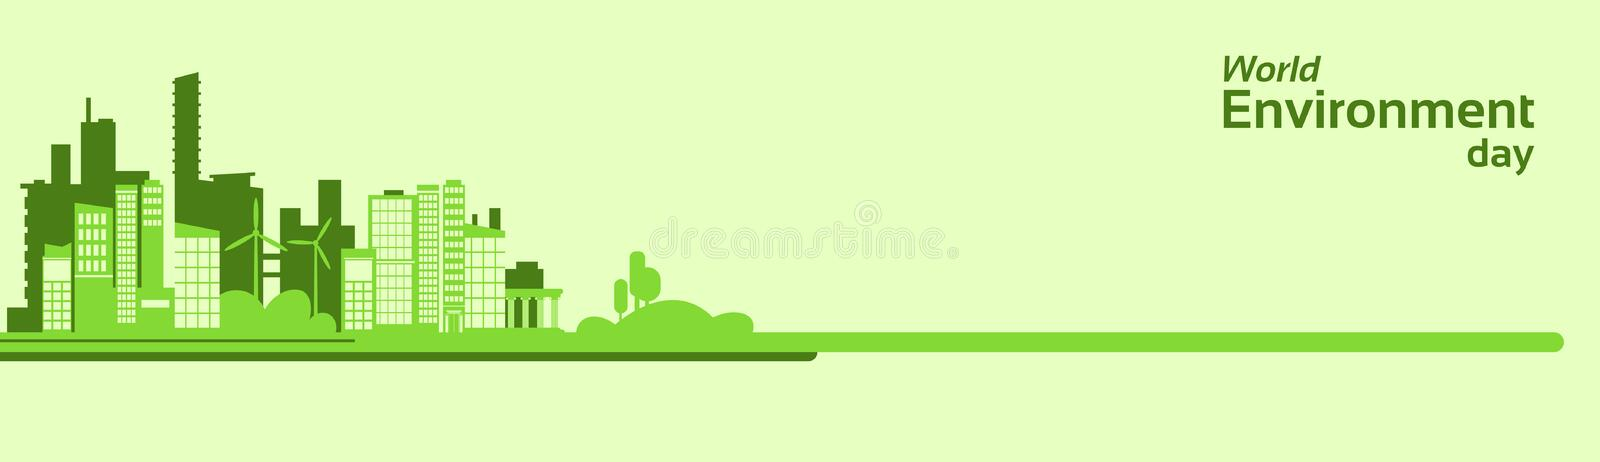 World Environment Day Green Silhouette City Eco Banner vector illustration